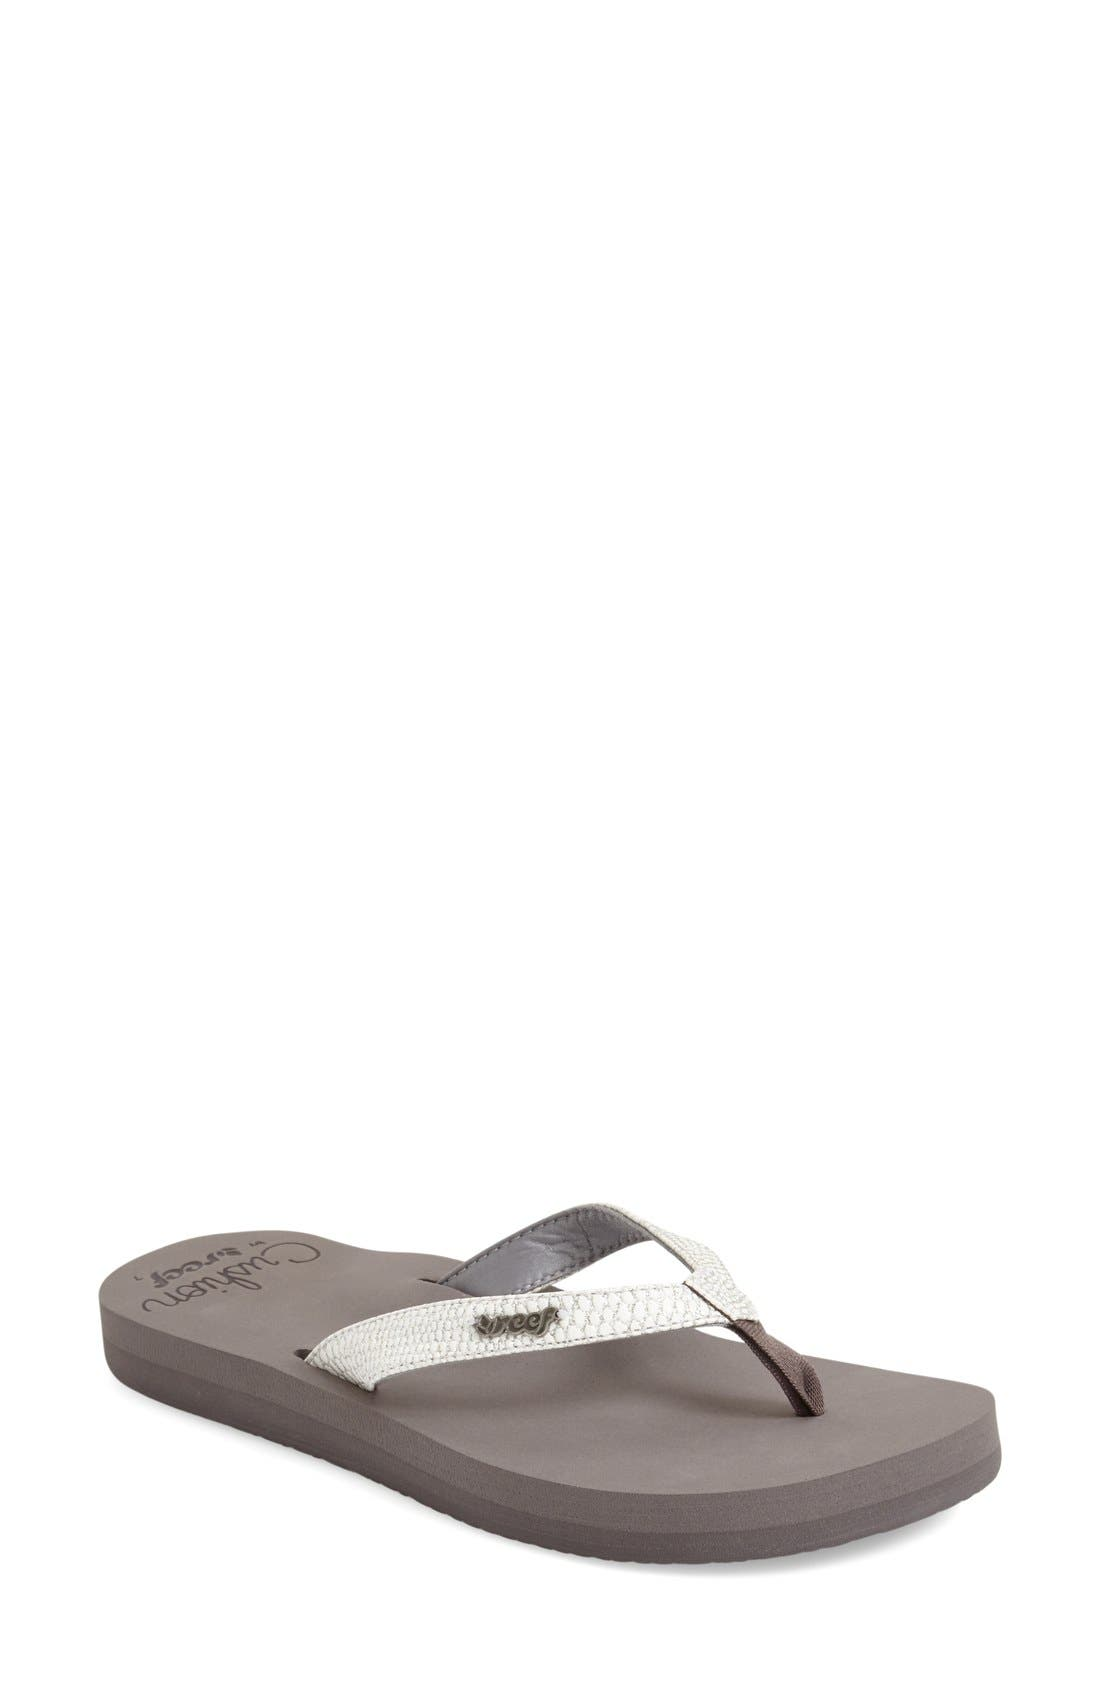 Reef 'Star' Flip Flop (Women)